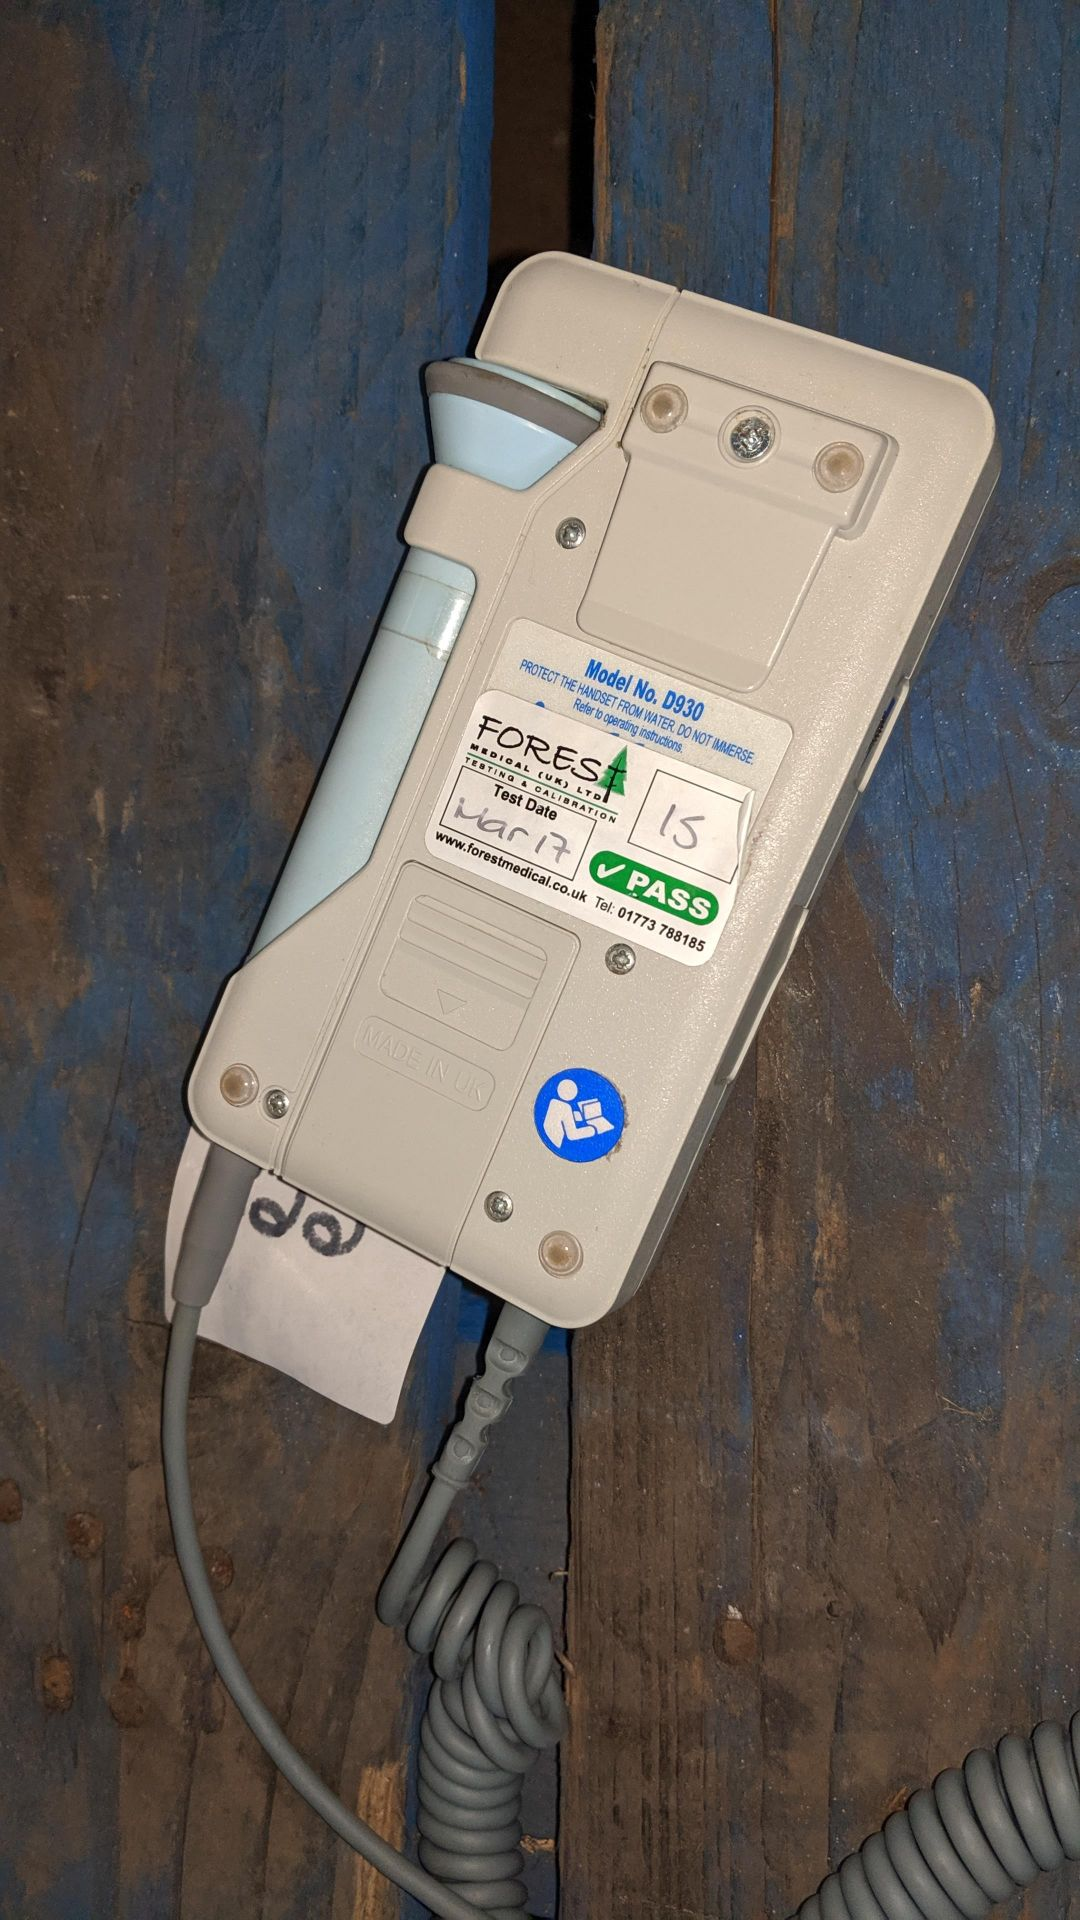 Lot 668 - Huntleigh Sonicaid D930 Fetal Doppler . This is one of a large number of lots used/owned by One To